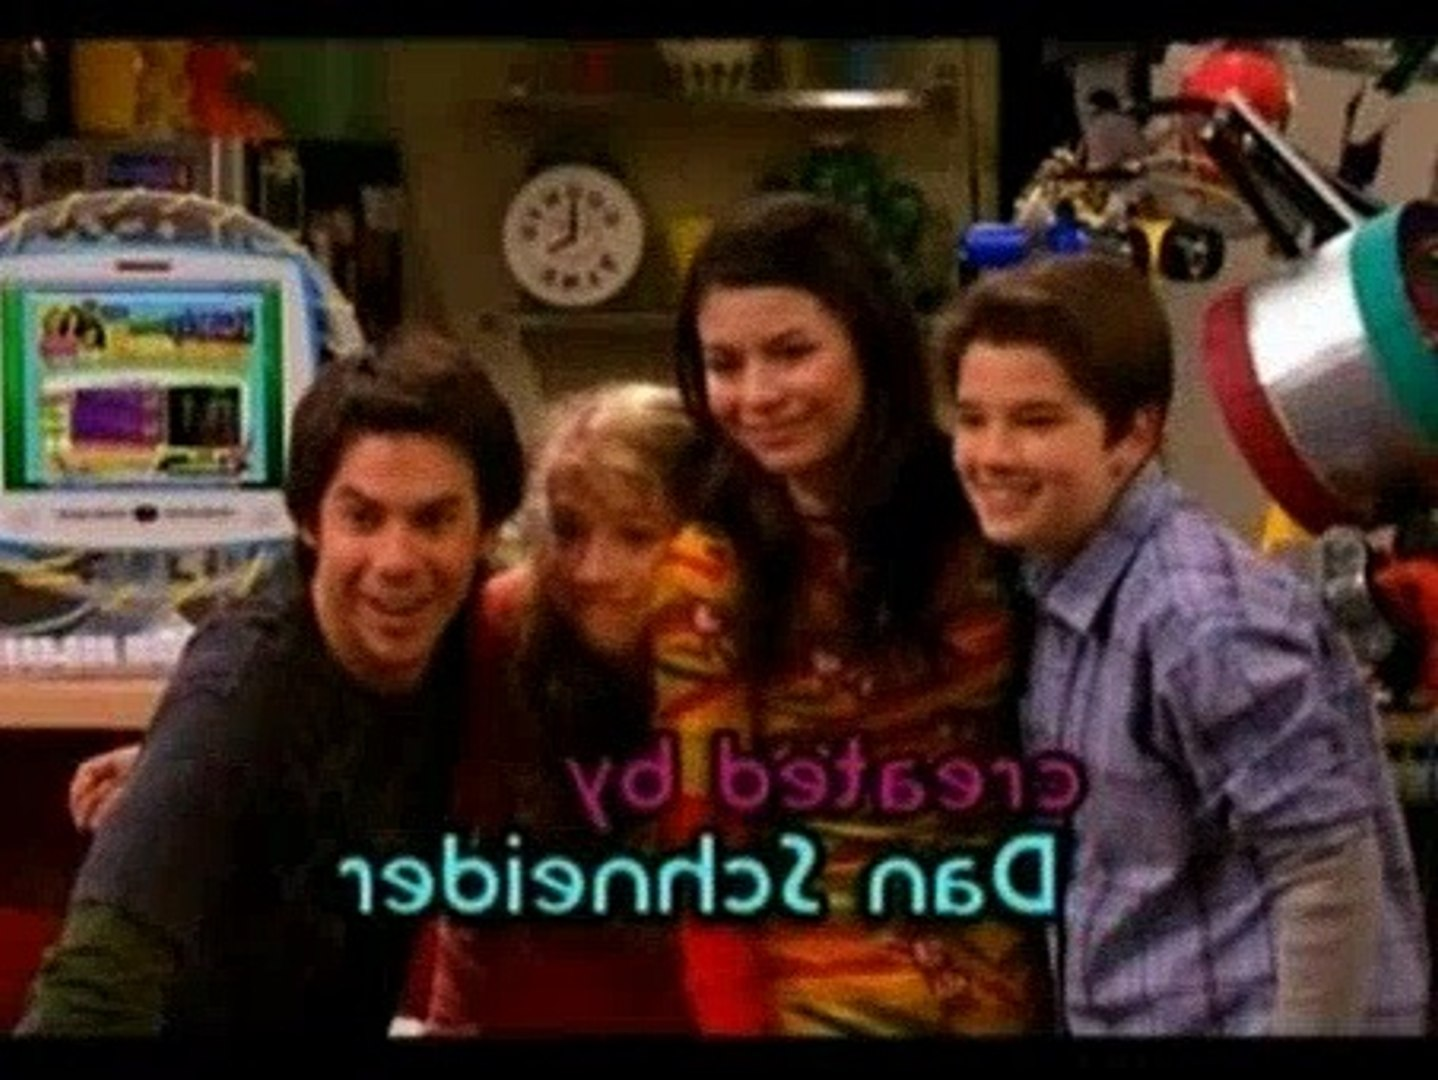 iCarly S01E13 iAm Your Biggest Fan